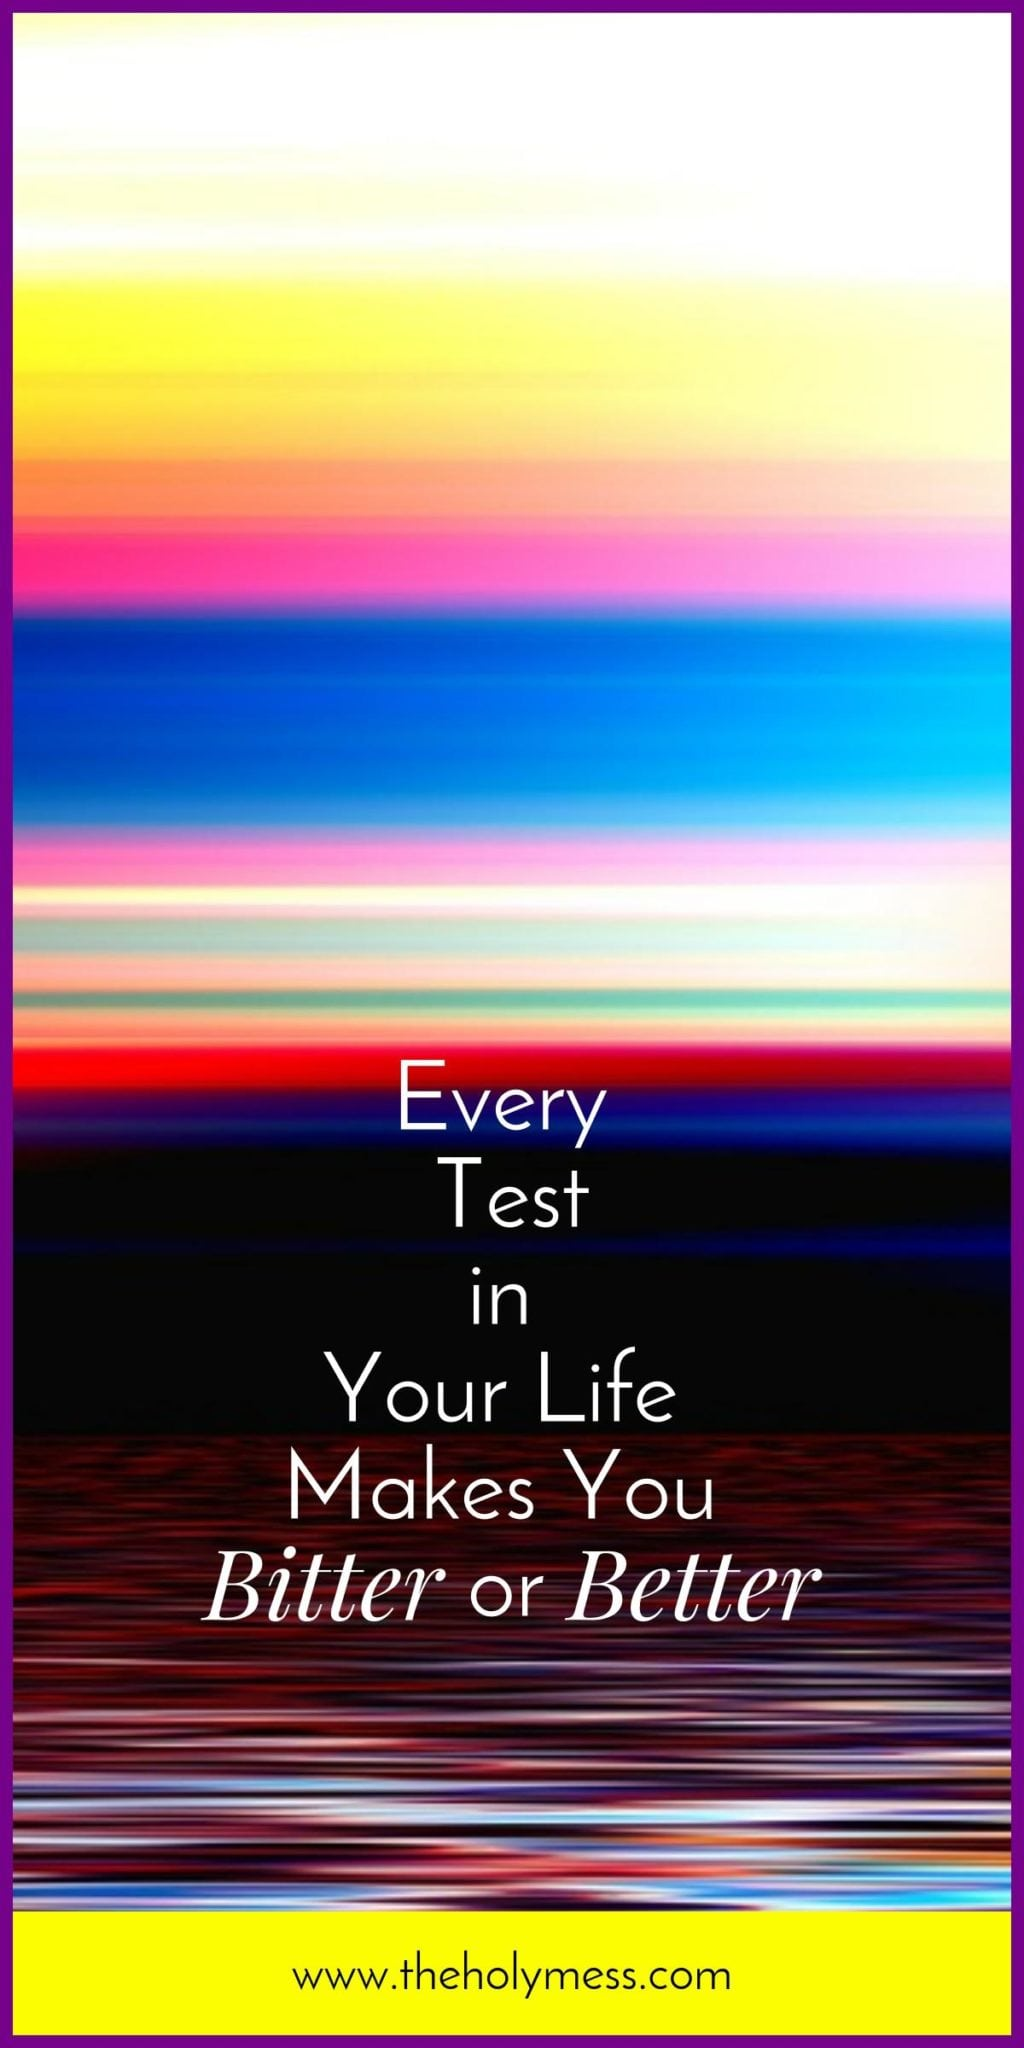 Every Test in Your Life Makes You Bitter or Better|The Holy Mess